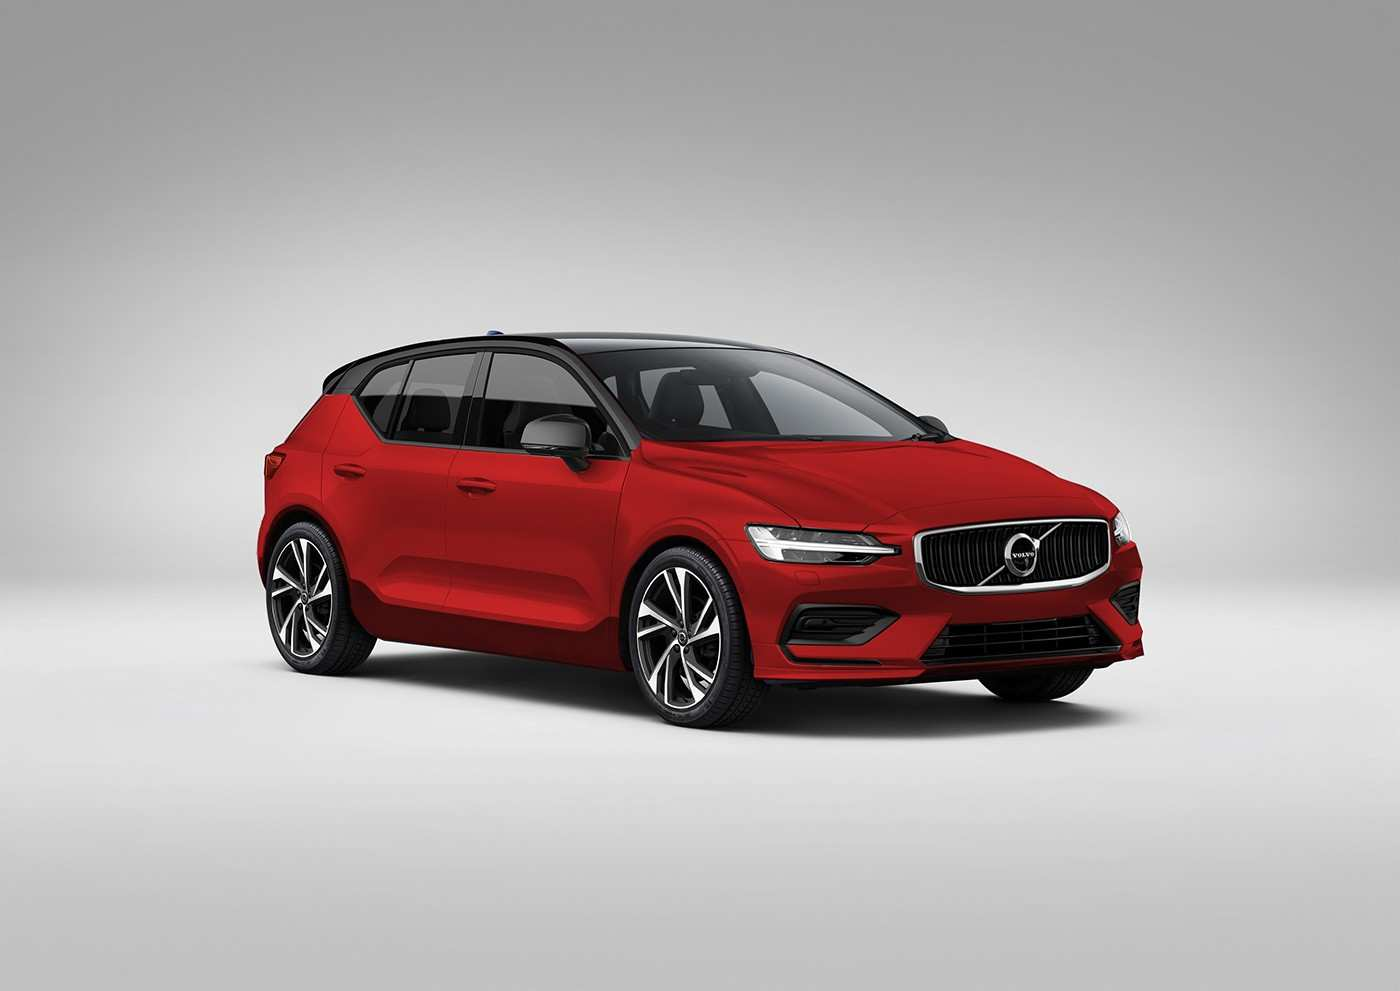 35 Concept of Volvo V40 2020 Model for Volvo V40 2020